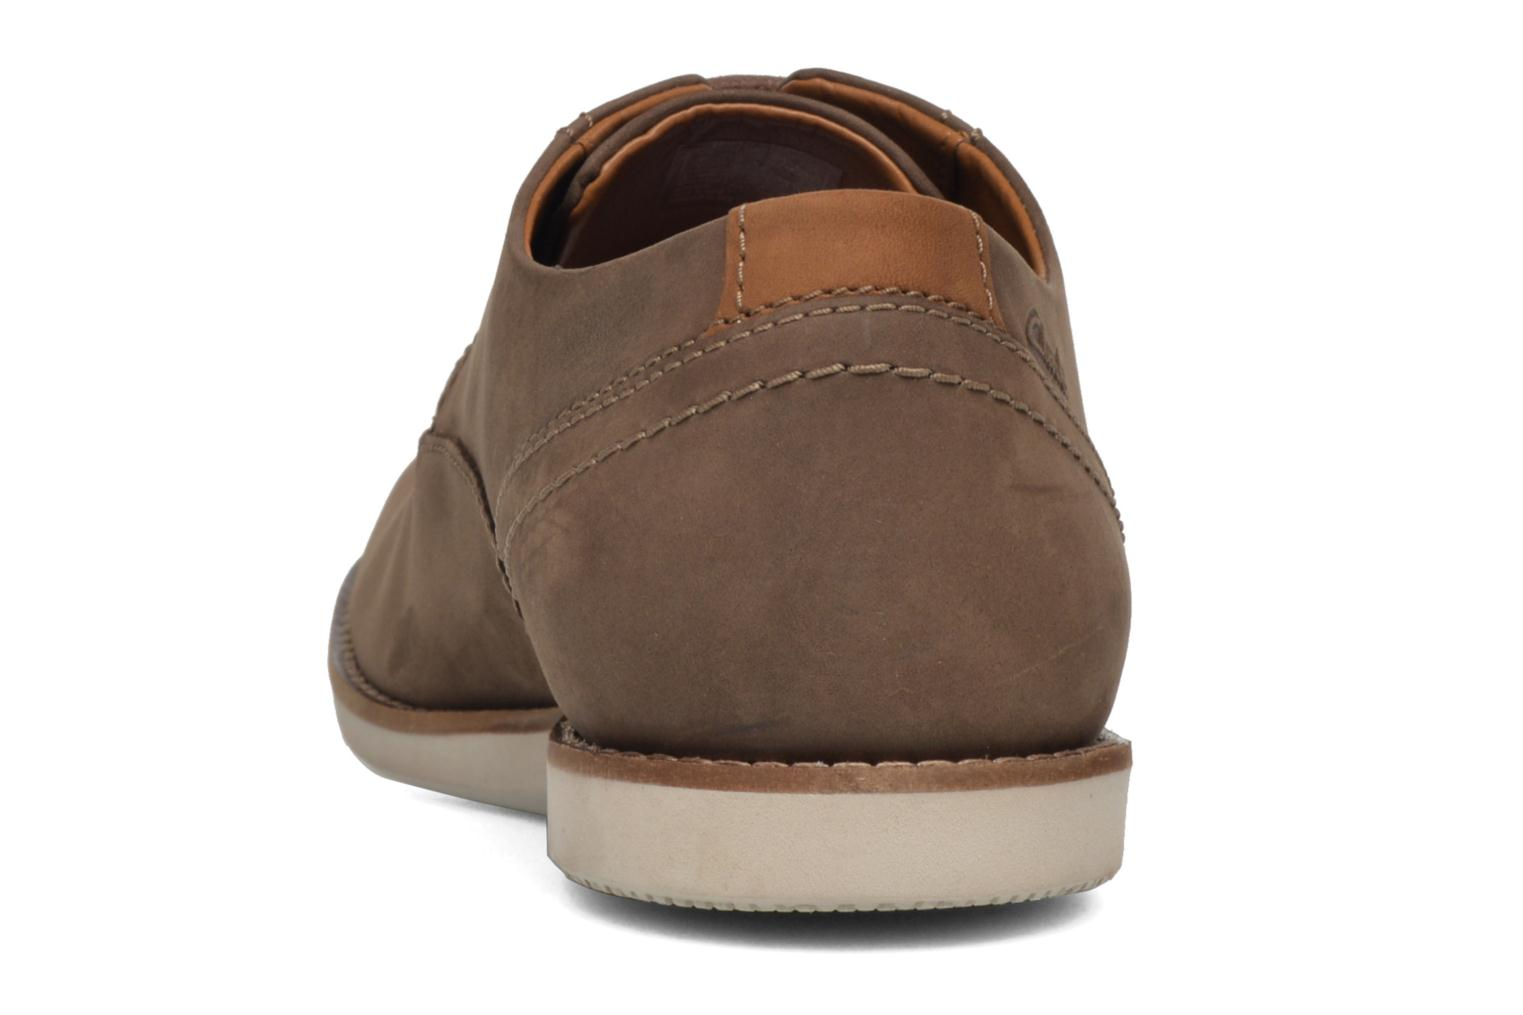 Franson Plain Brown Nubuck